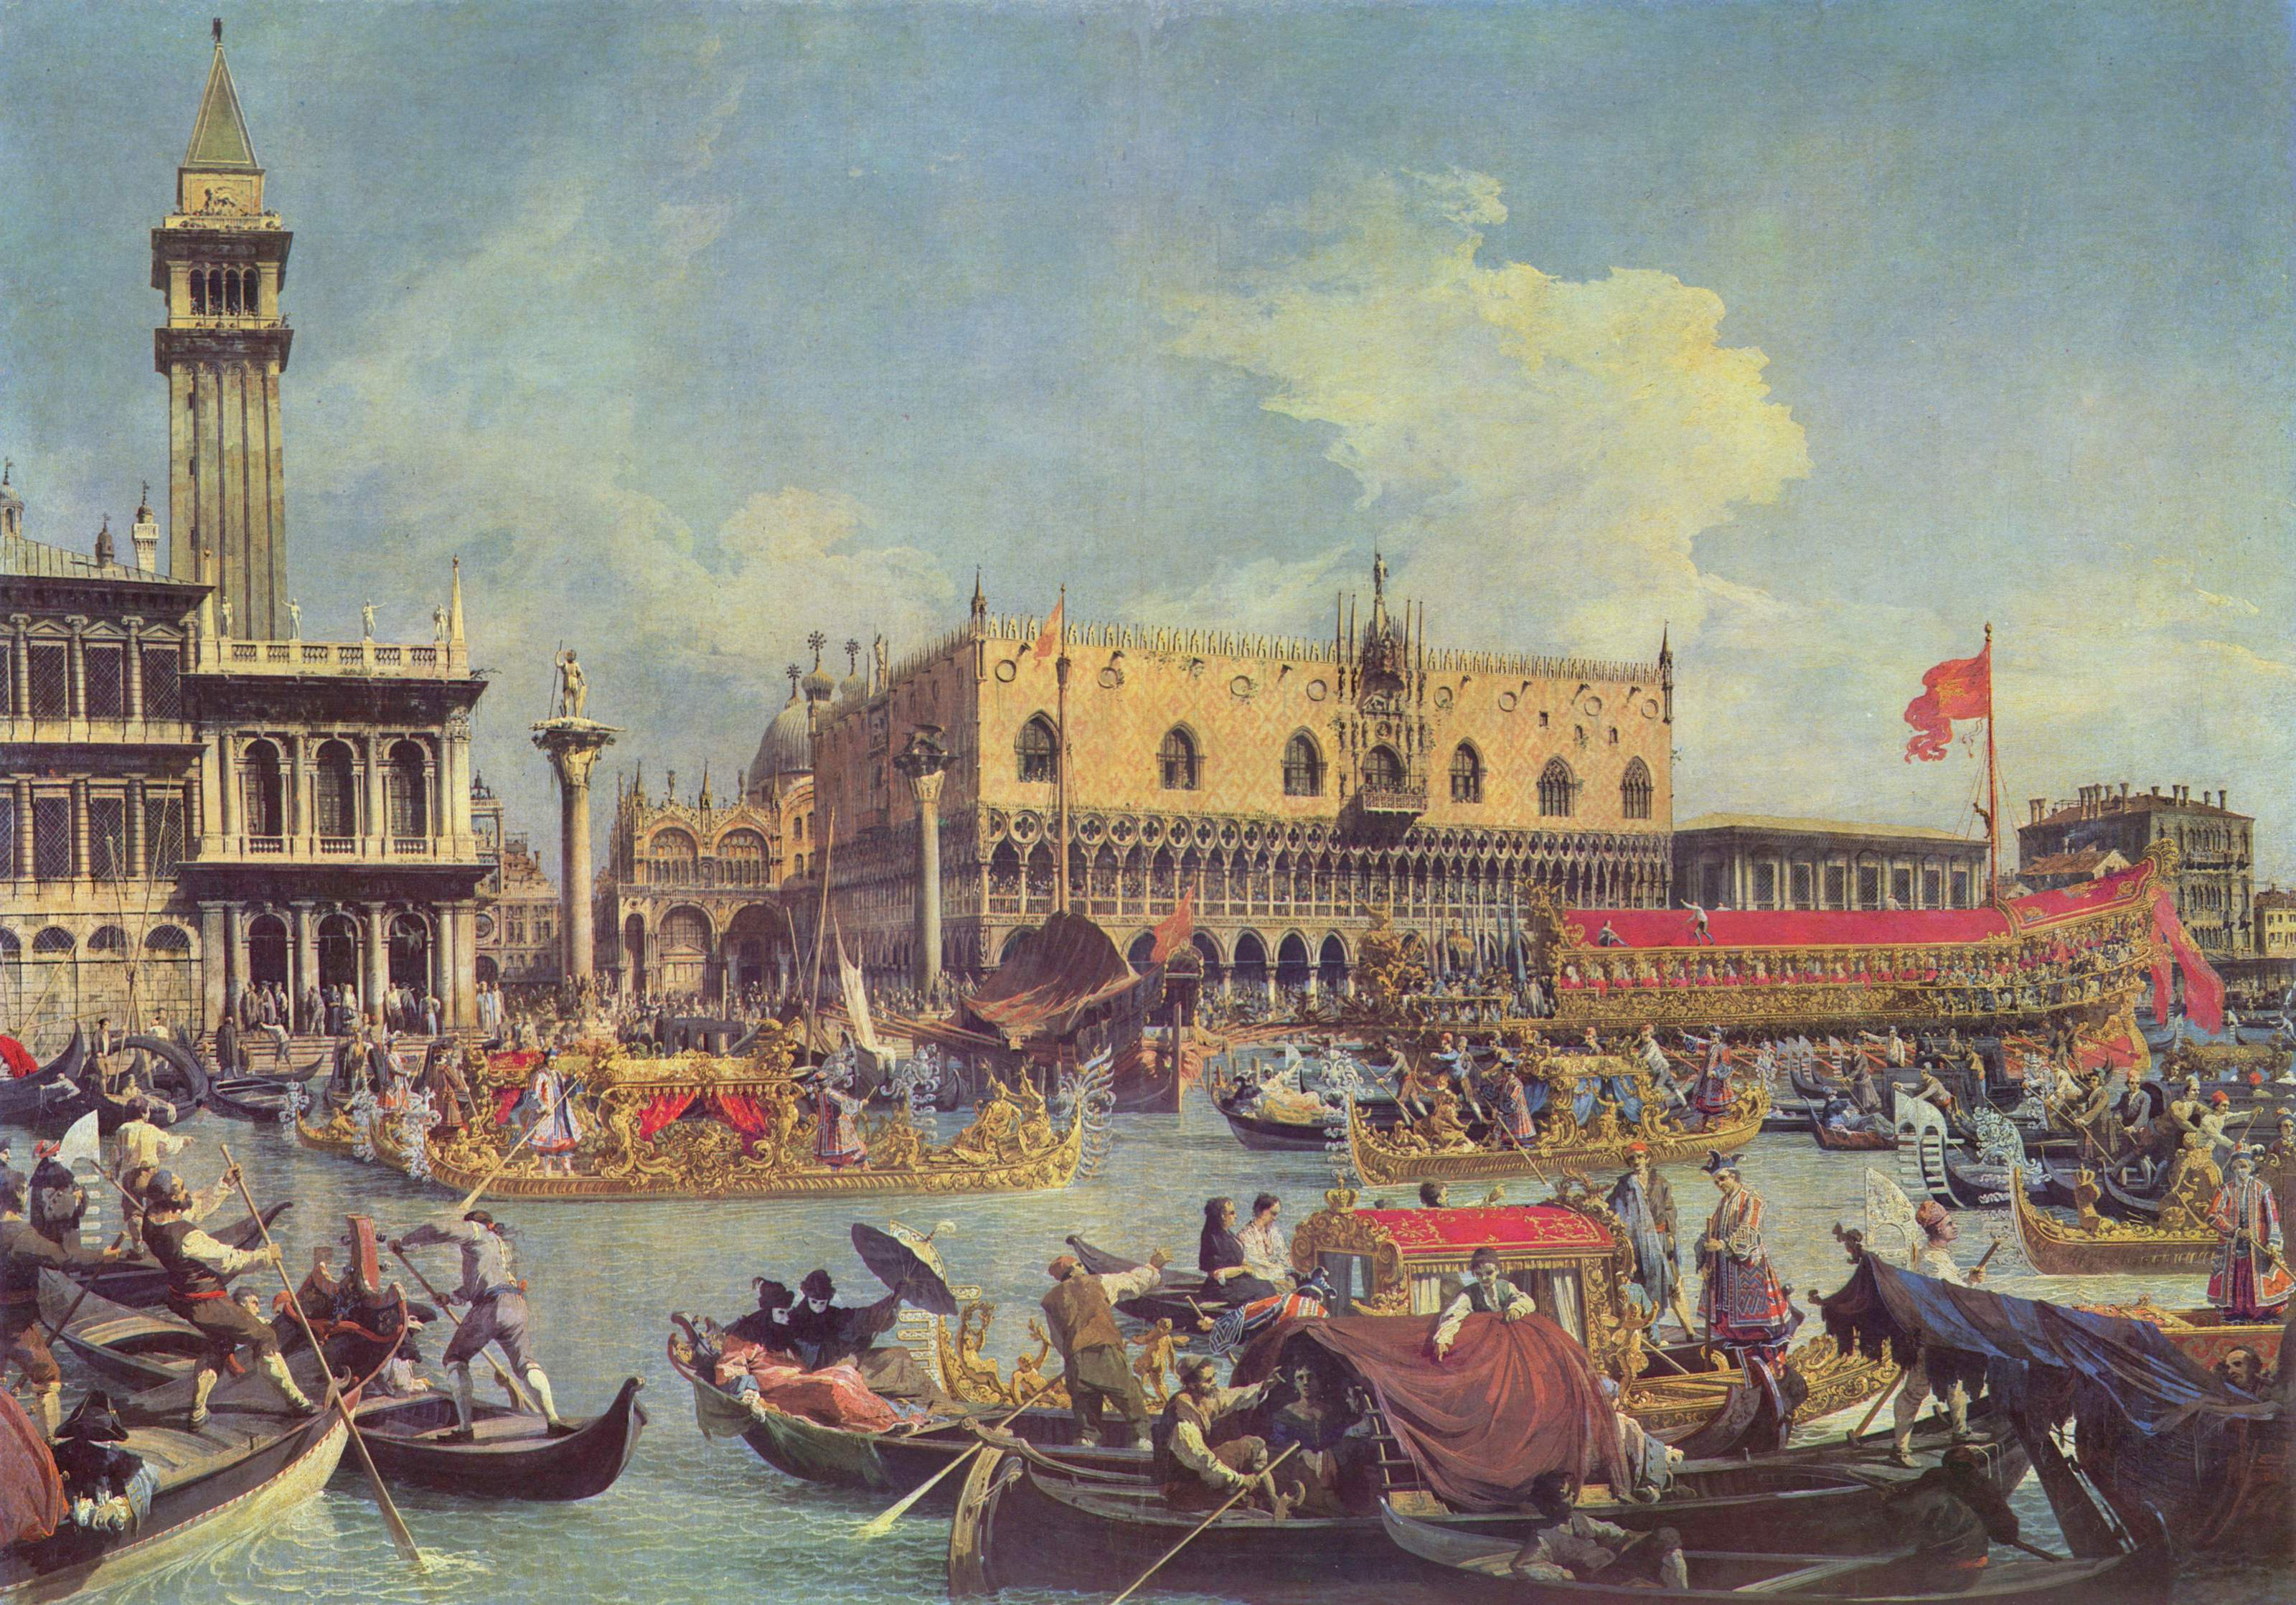 Betrothal of the Doge to the sea on the canvas by Canaletto.